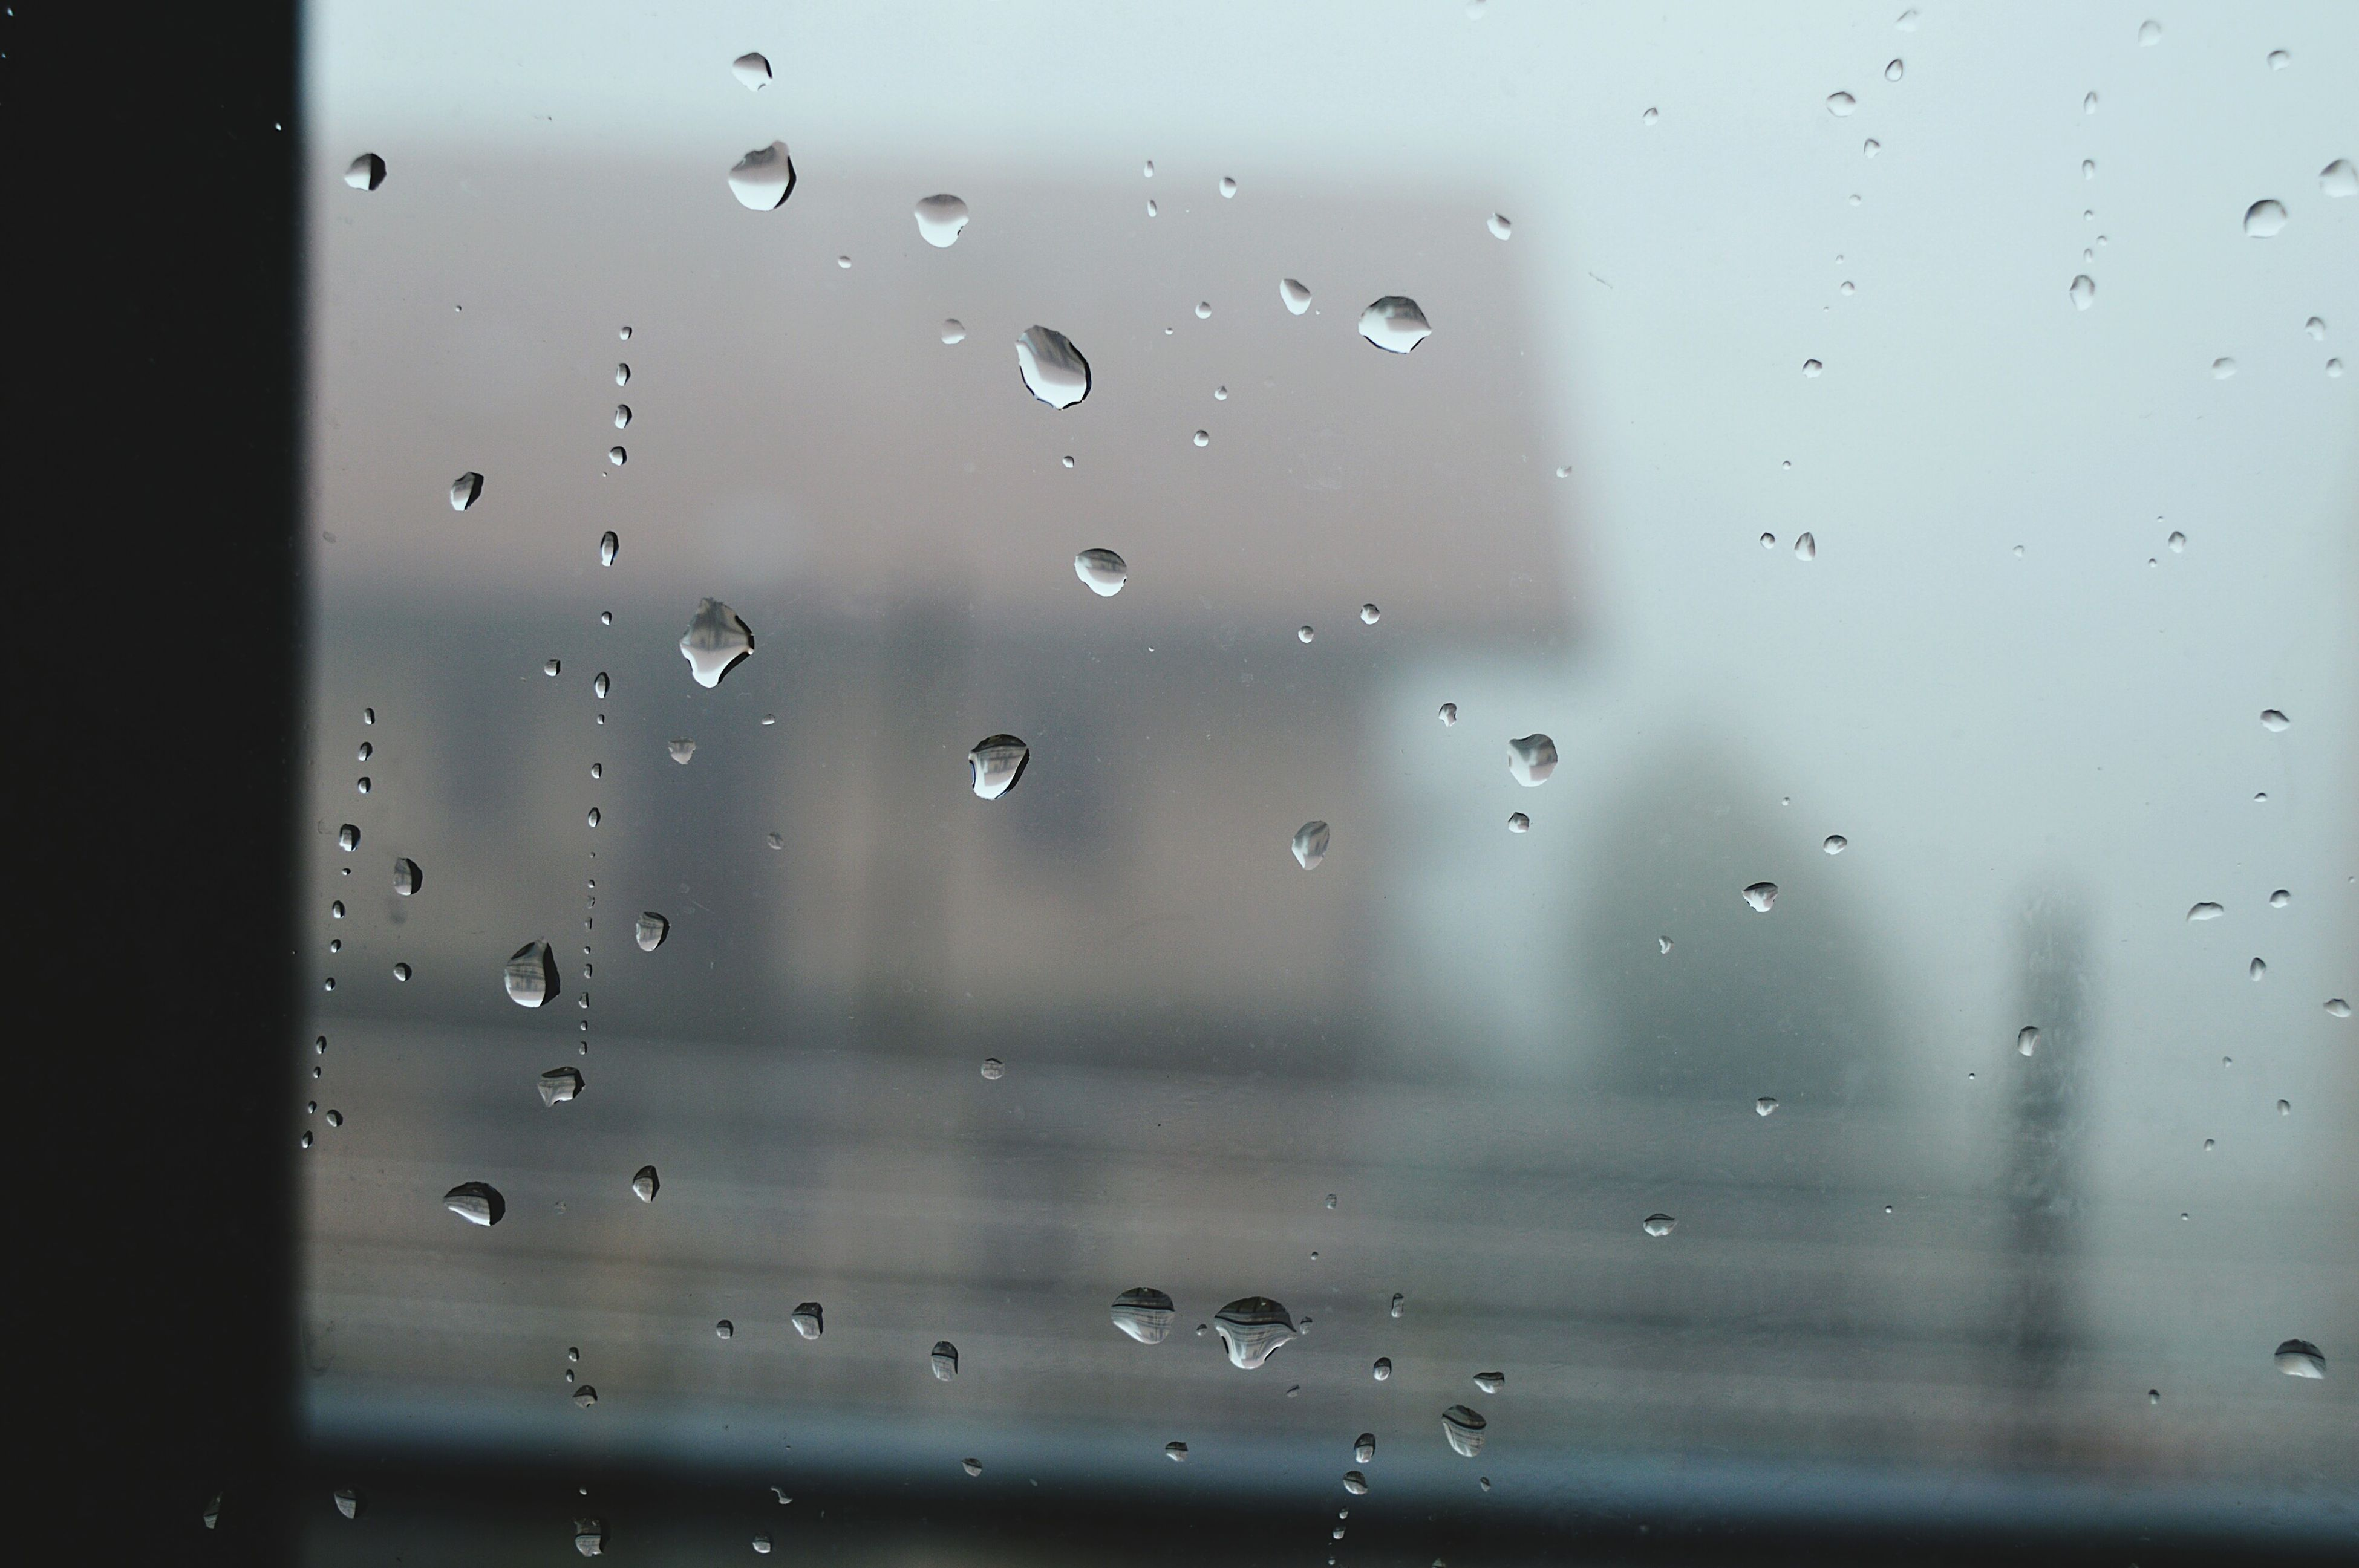 drop, wet, window, indoors, rain, transparent, water, glass - material, raindrop, full frame, weather, backgrounds, glass, focus on foreground, close-up, season, sky, droplet, water drop, monsoon